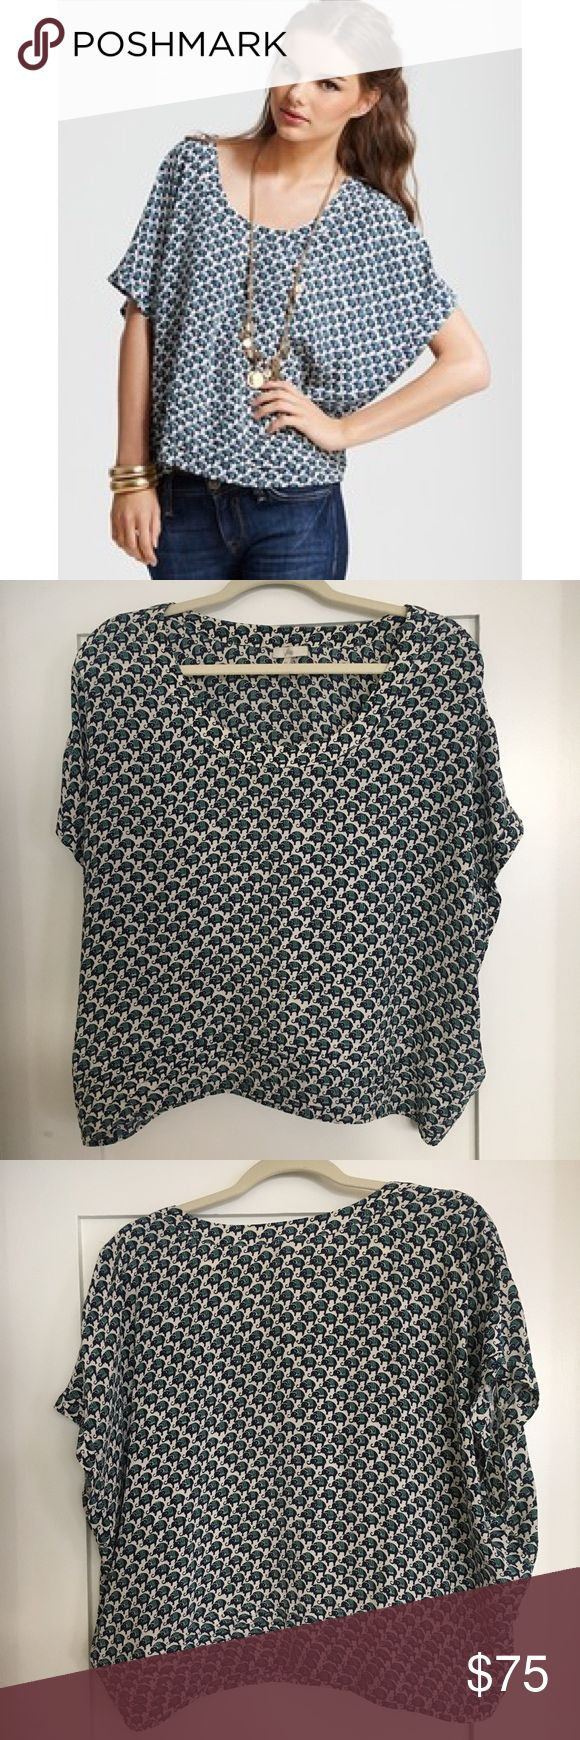 Joie Jan Savory Silk Elephant Printed Top, Medium Beautiful, 100% silk Joie elephant print top in fantastic condition! A retro elephant print lends lighthearted charm to this wide-bodied silk top from Joie. Team with your favorite skinnies for a chic off-hours look. Joie Tops